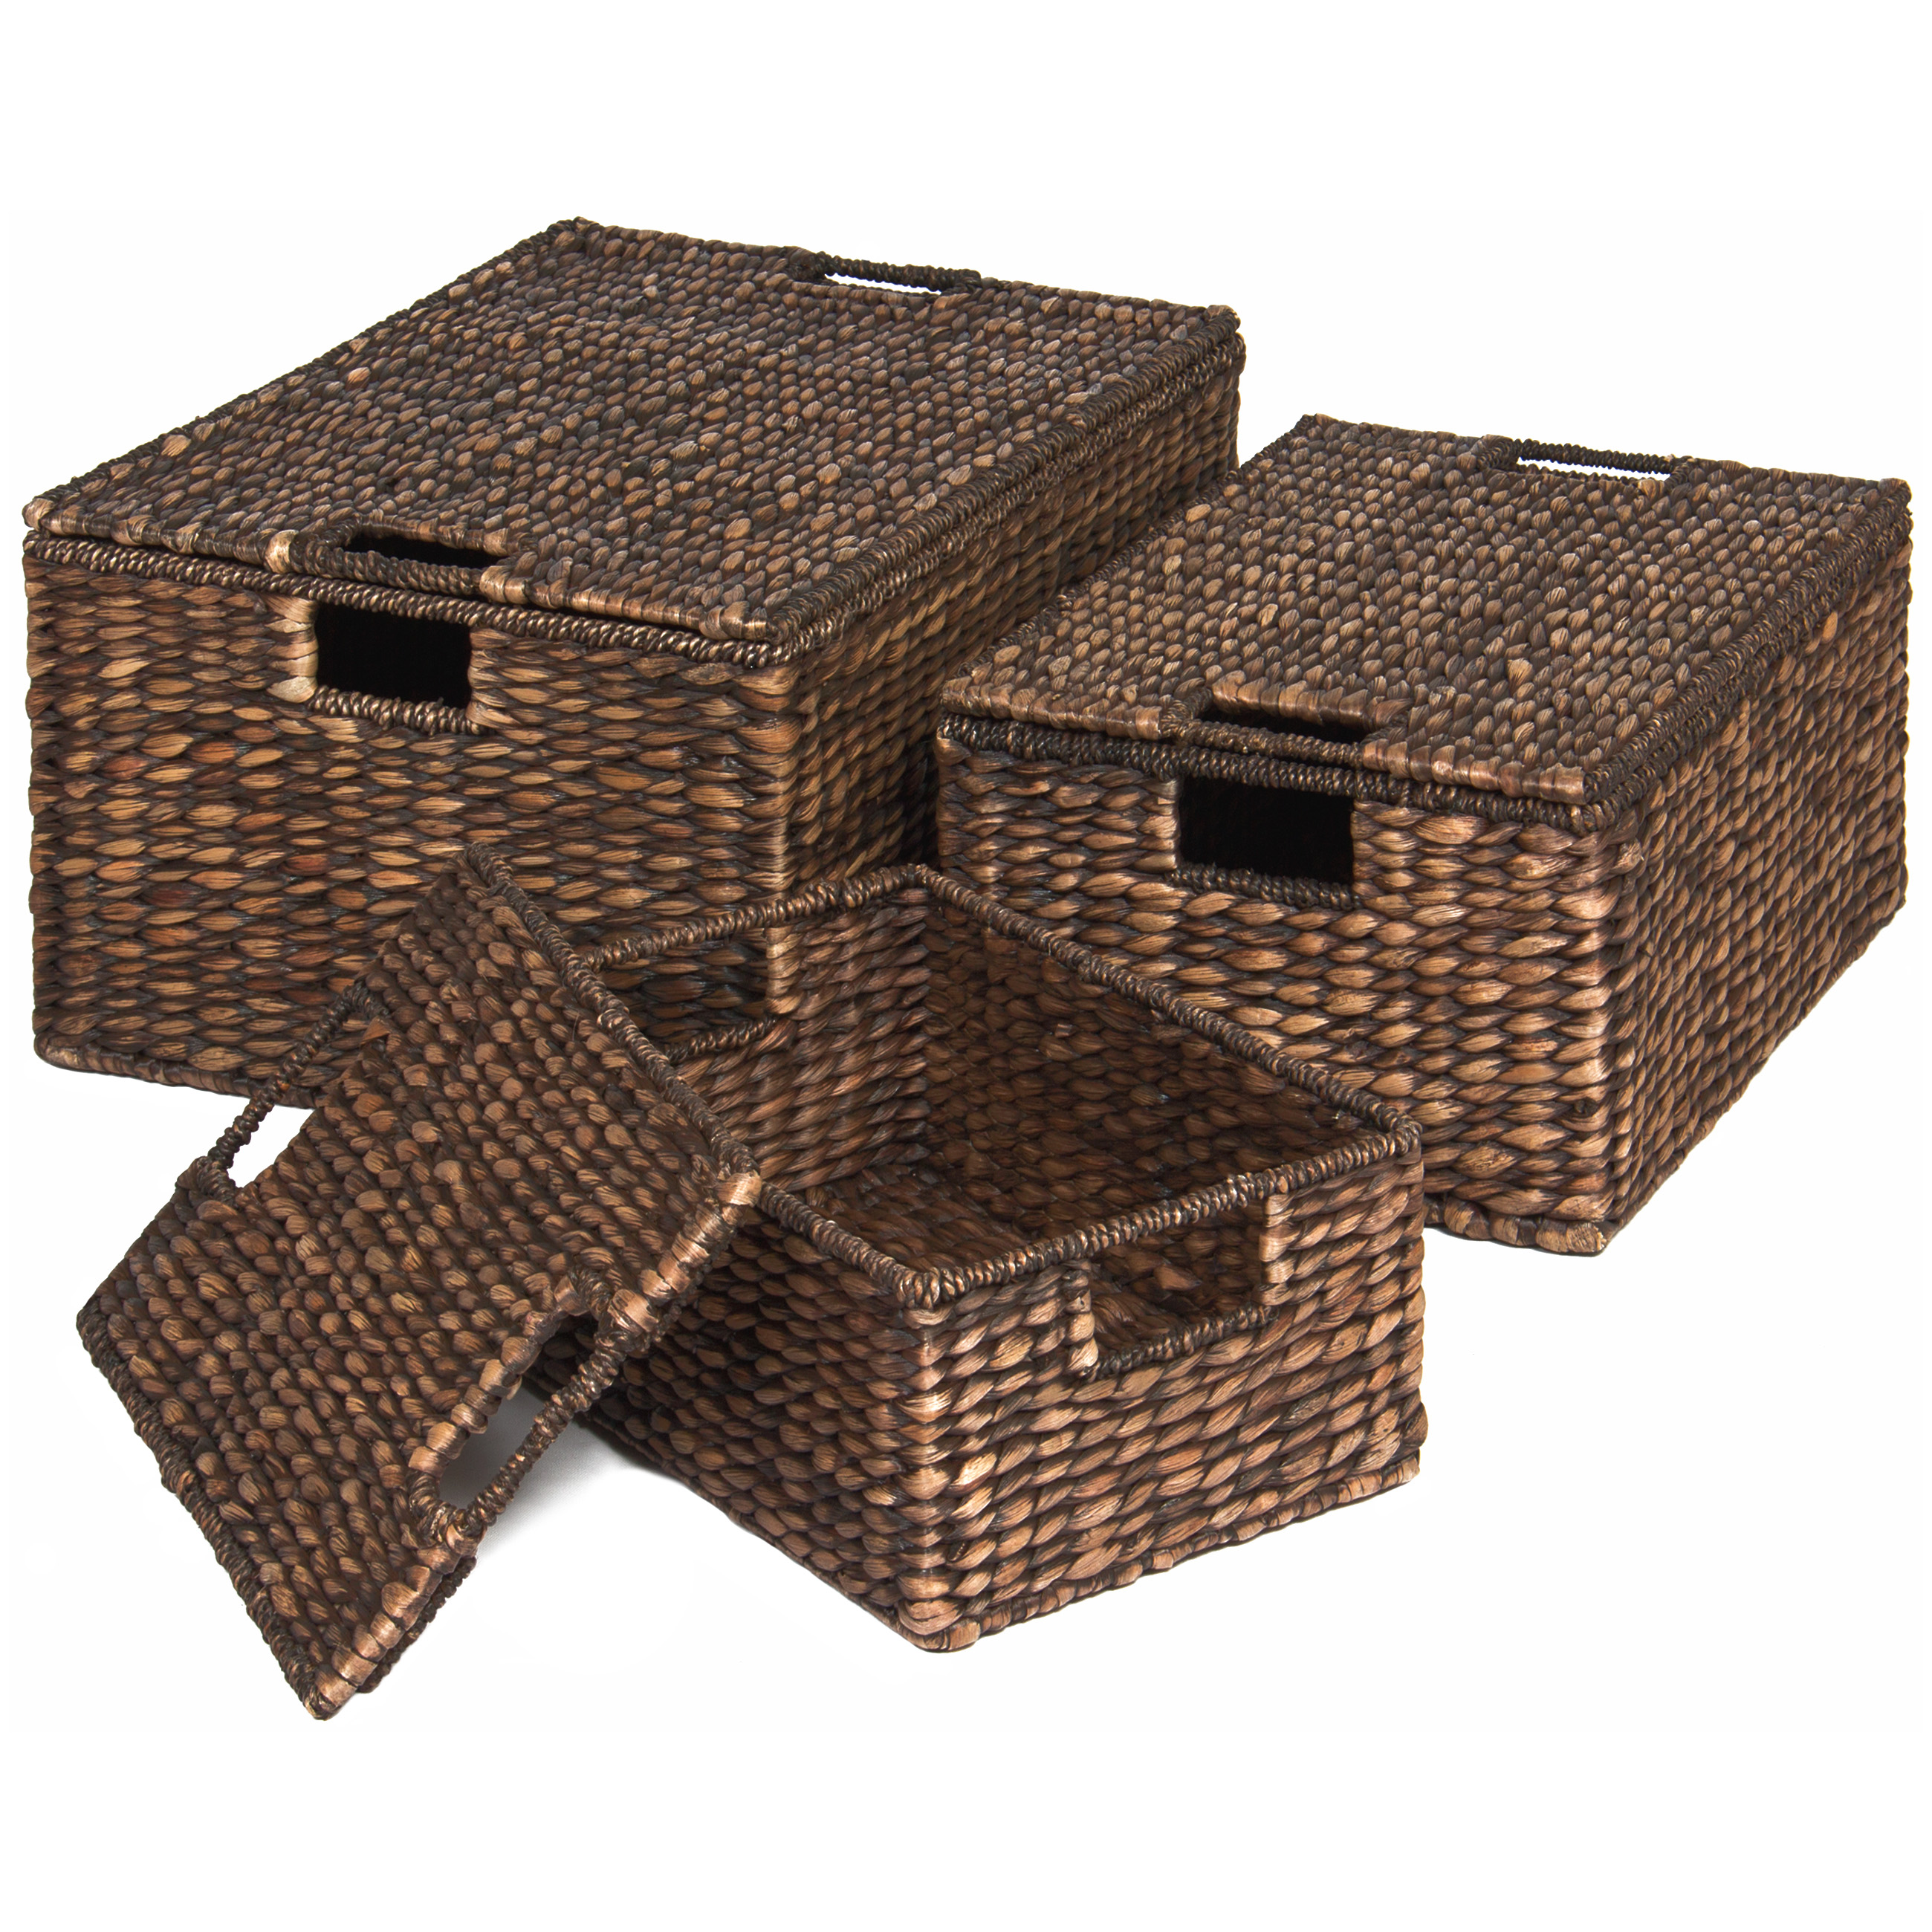 Best Choice Products Set of 3 Water Hyacinth Nesting Baskets W/ Separate Lids Brushed Espresso